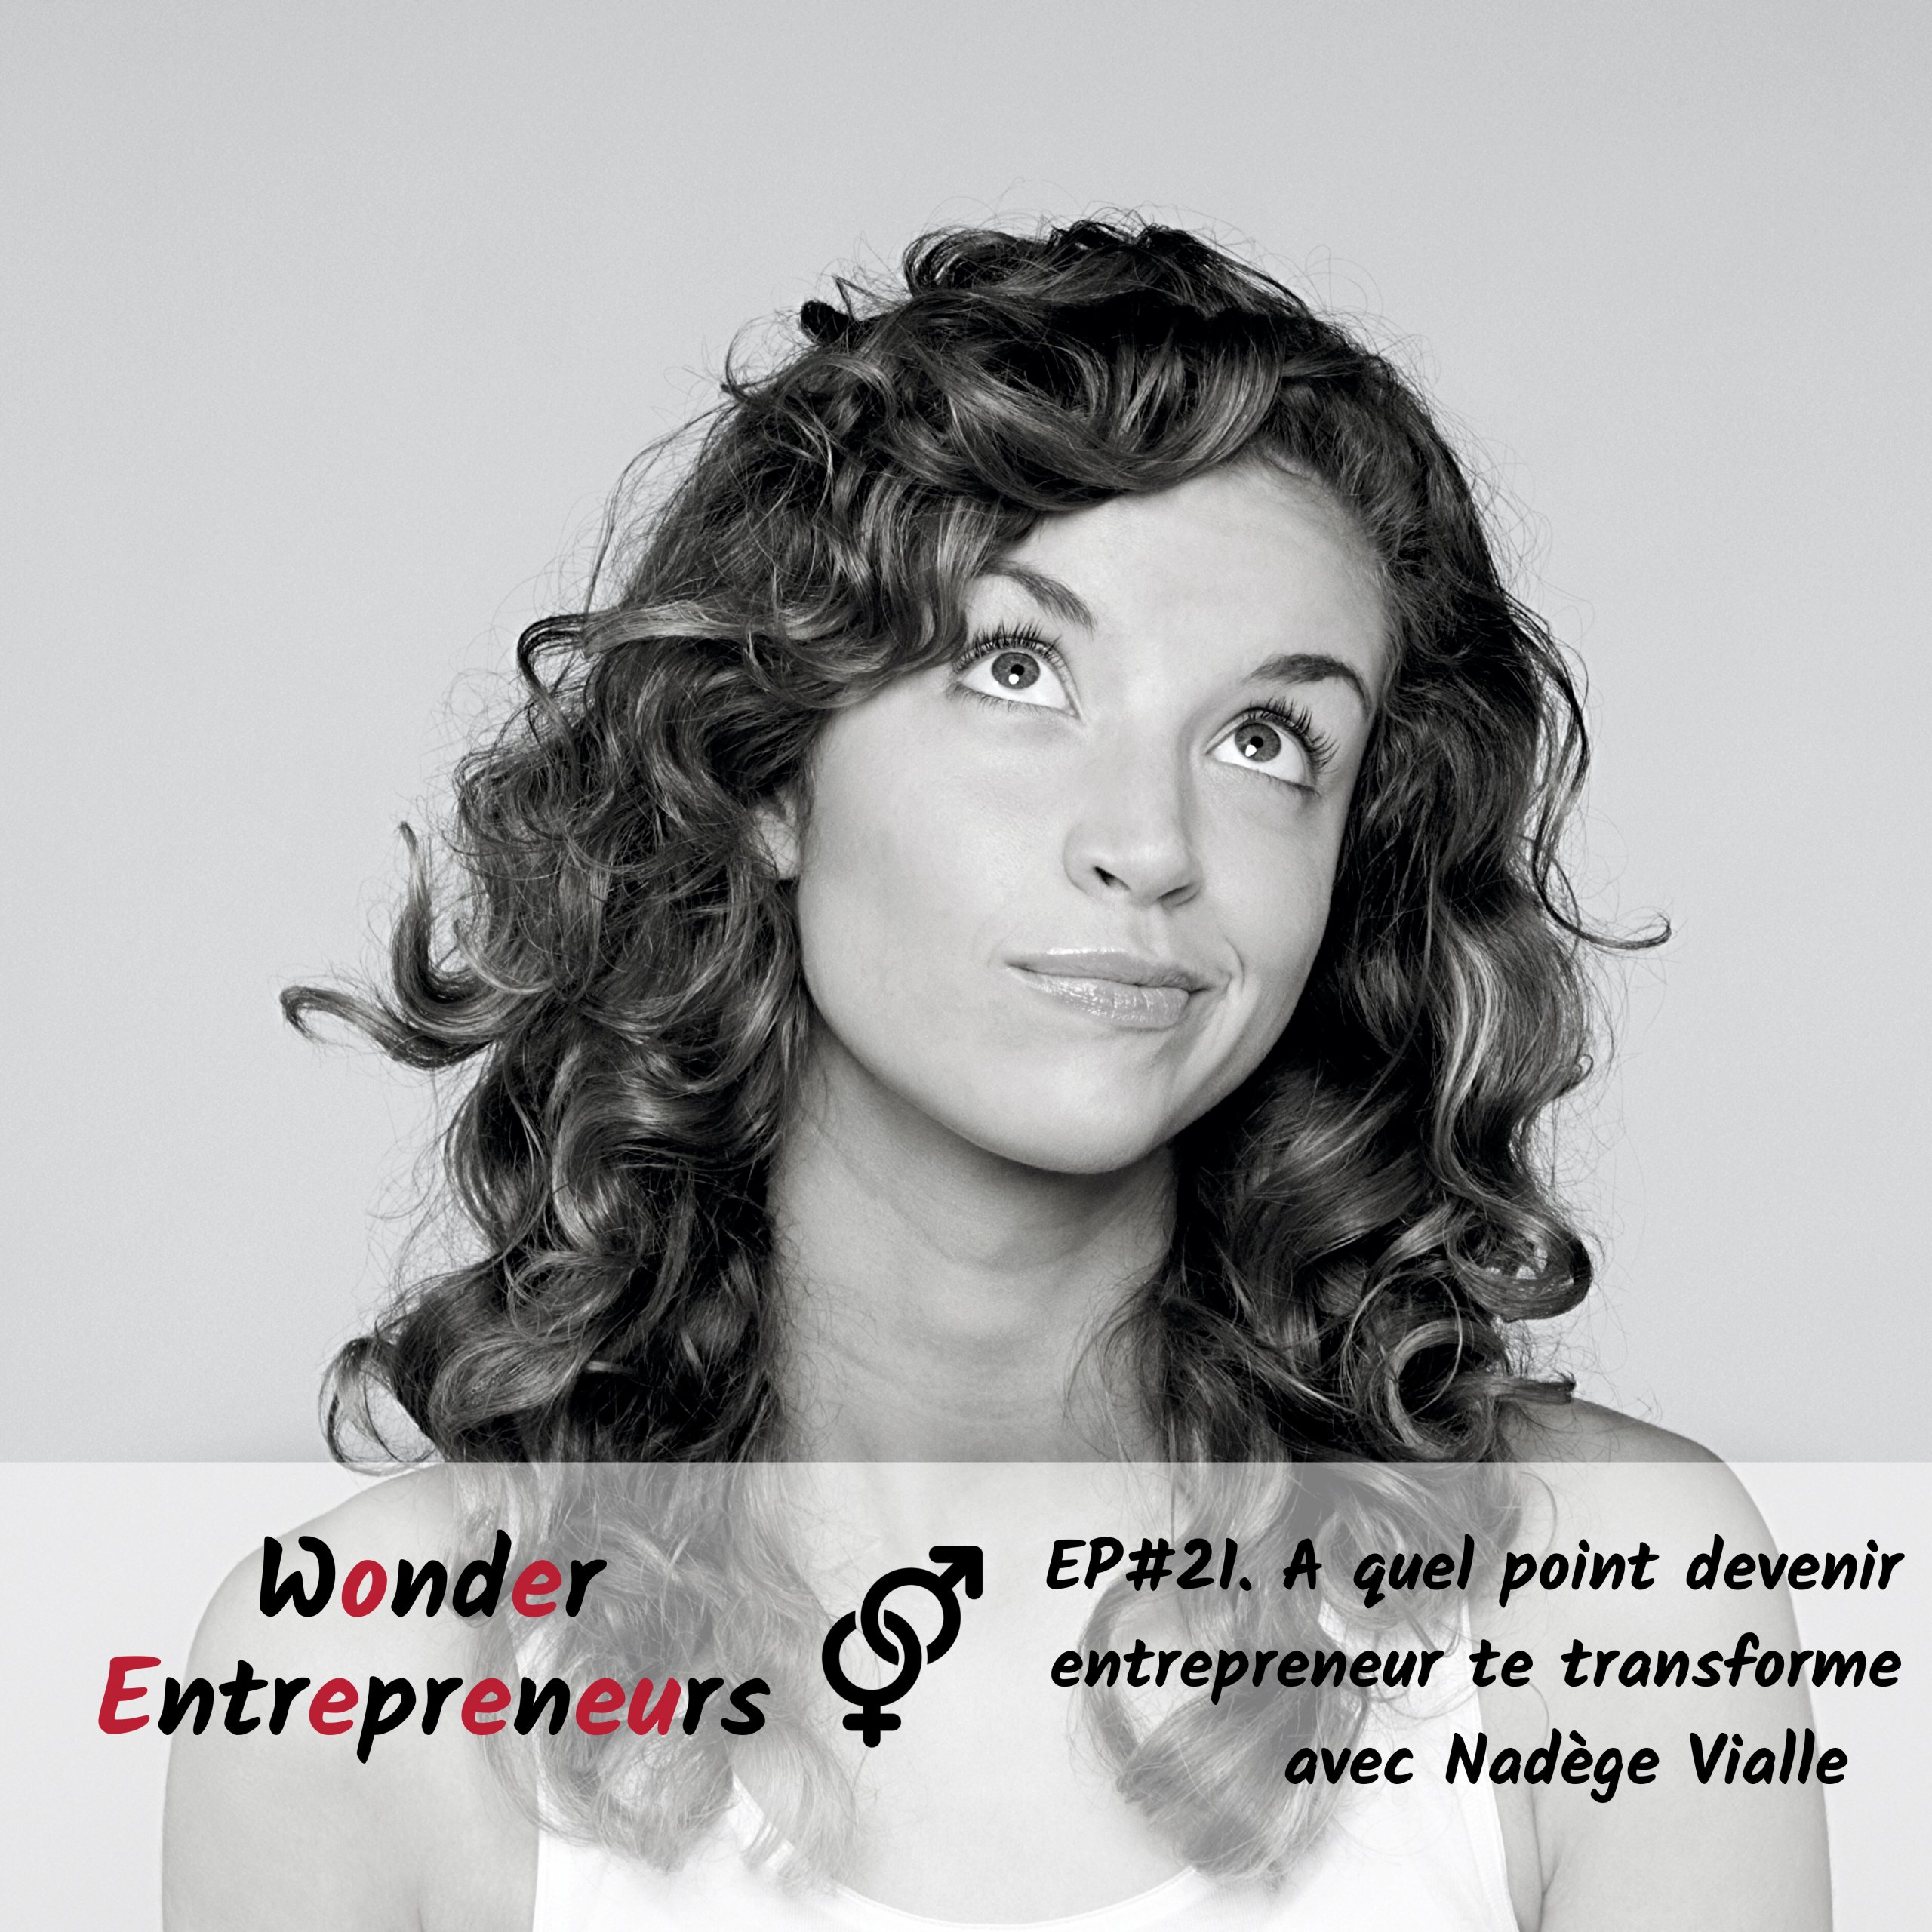 Ep 21 Podcast Wonder Entrepreneur - A quel point devenir entrepreneur te transforme